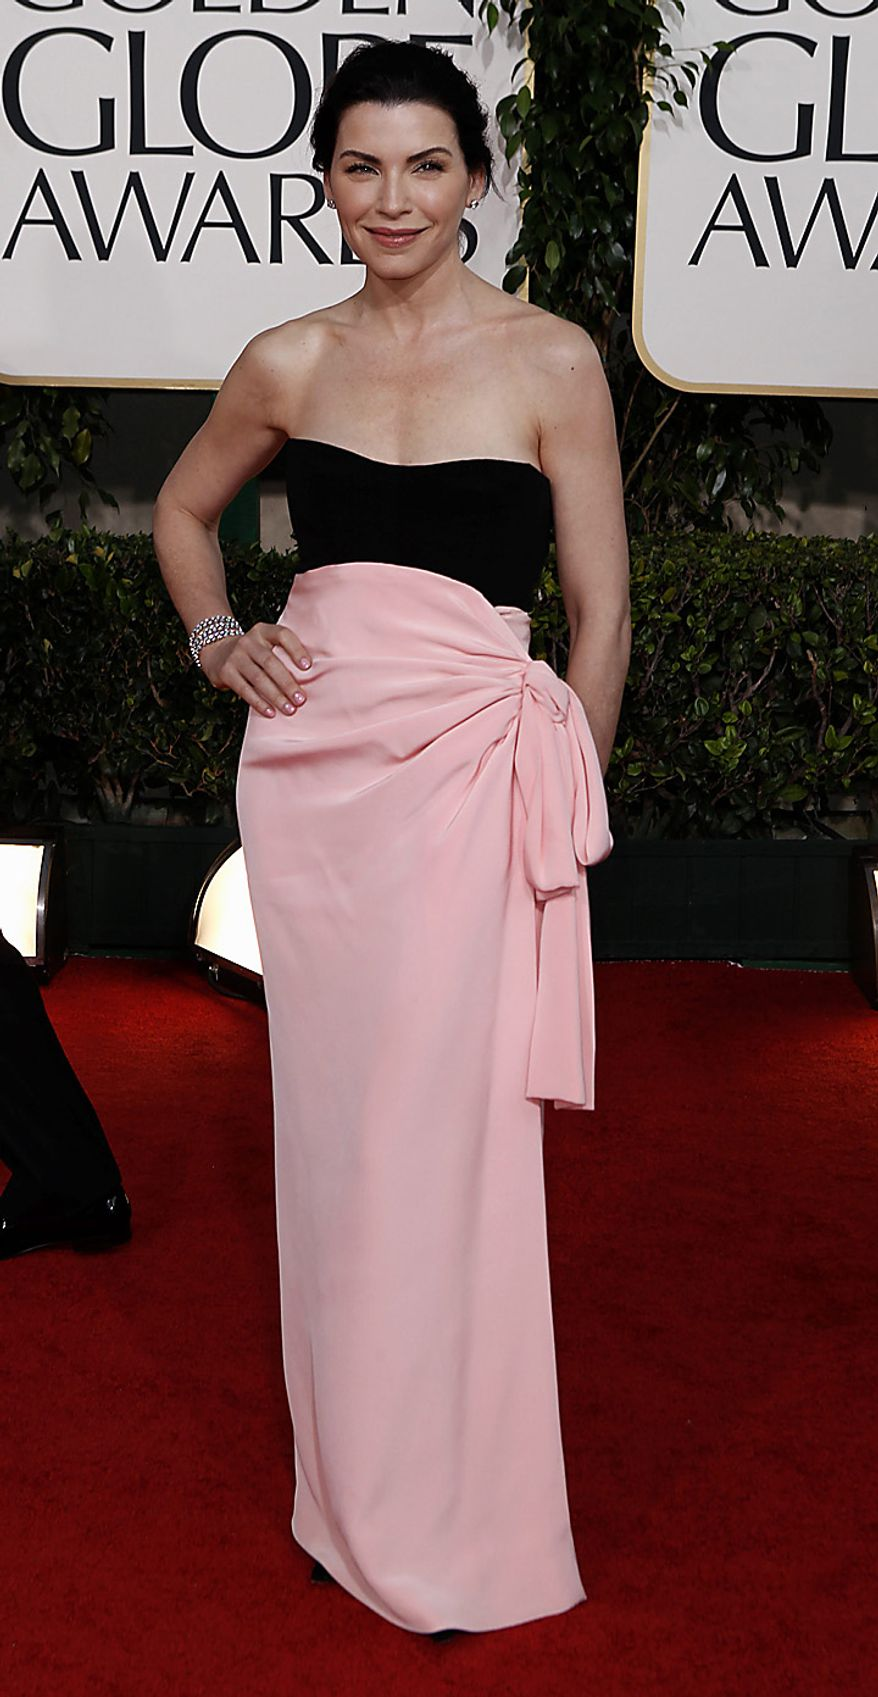 Julianna Margulies arrives for the Golden Globe Awards Sunday, Jan. 16, 2011, in Beverly Hills, Calif. (AP Photo/Matt Sayles)